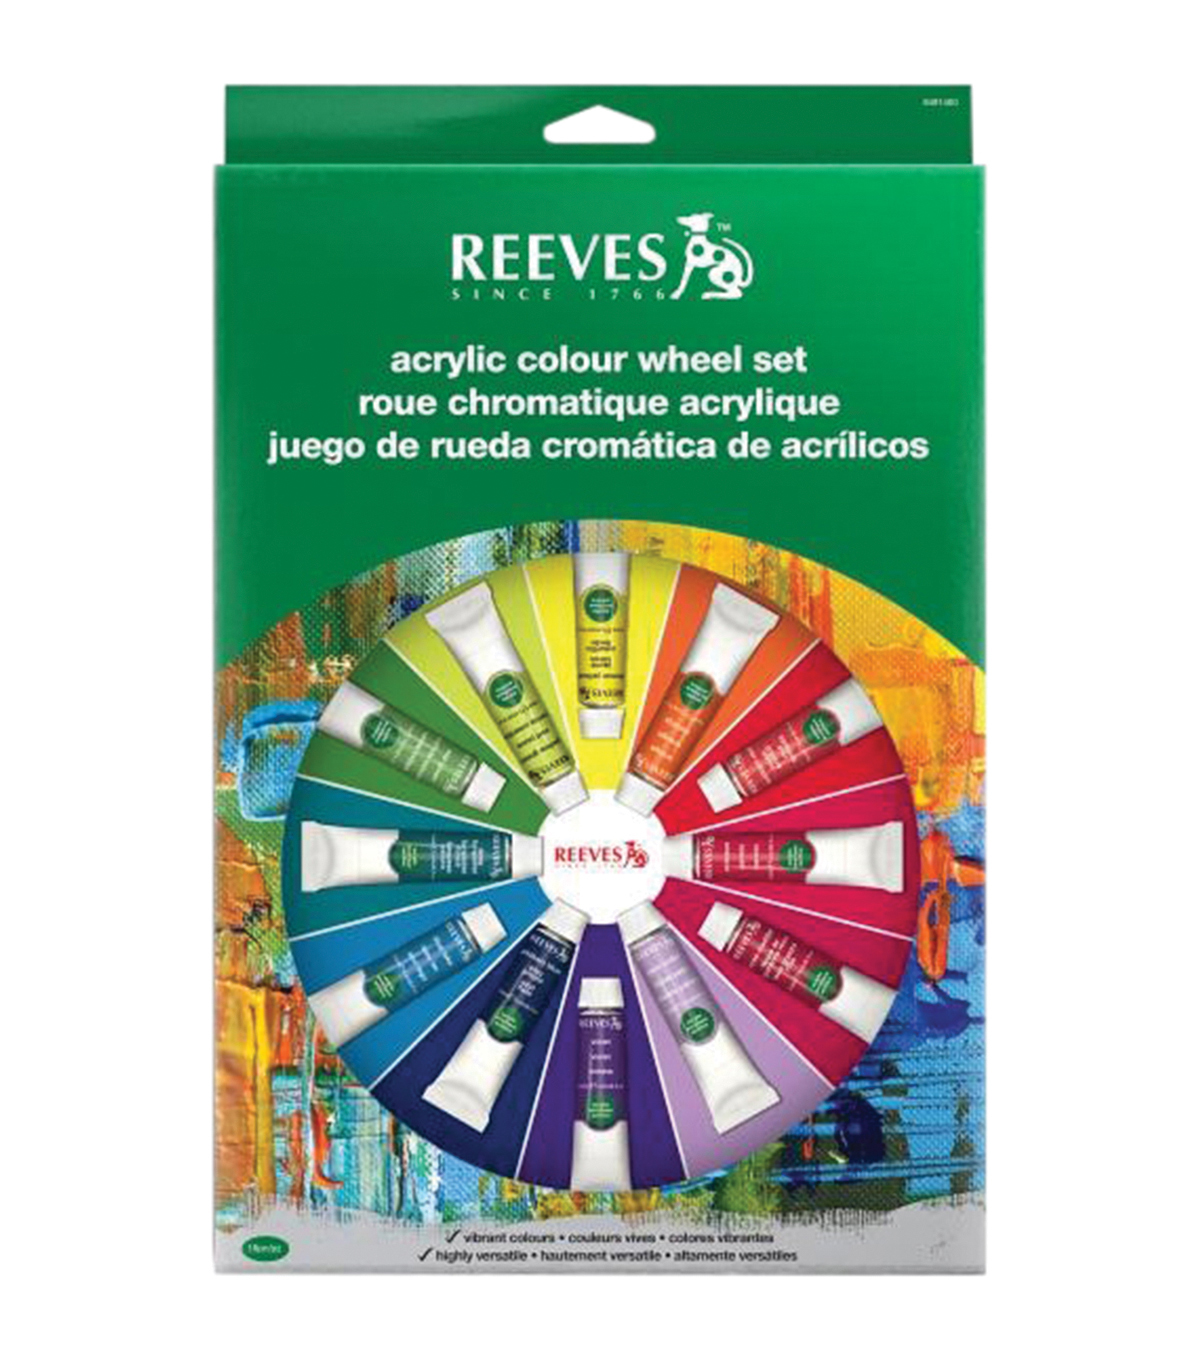 Reeves® Acrylic Colour Wheel Set